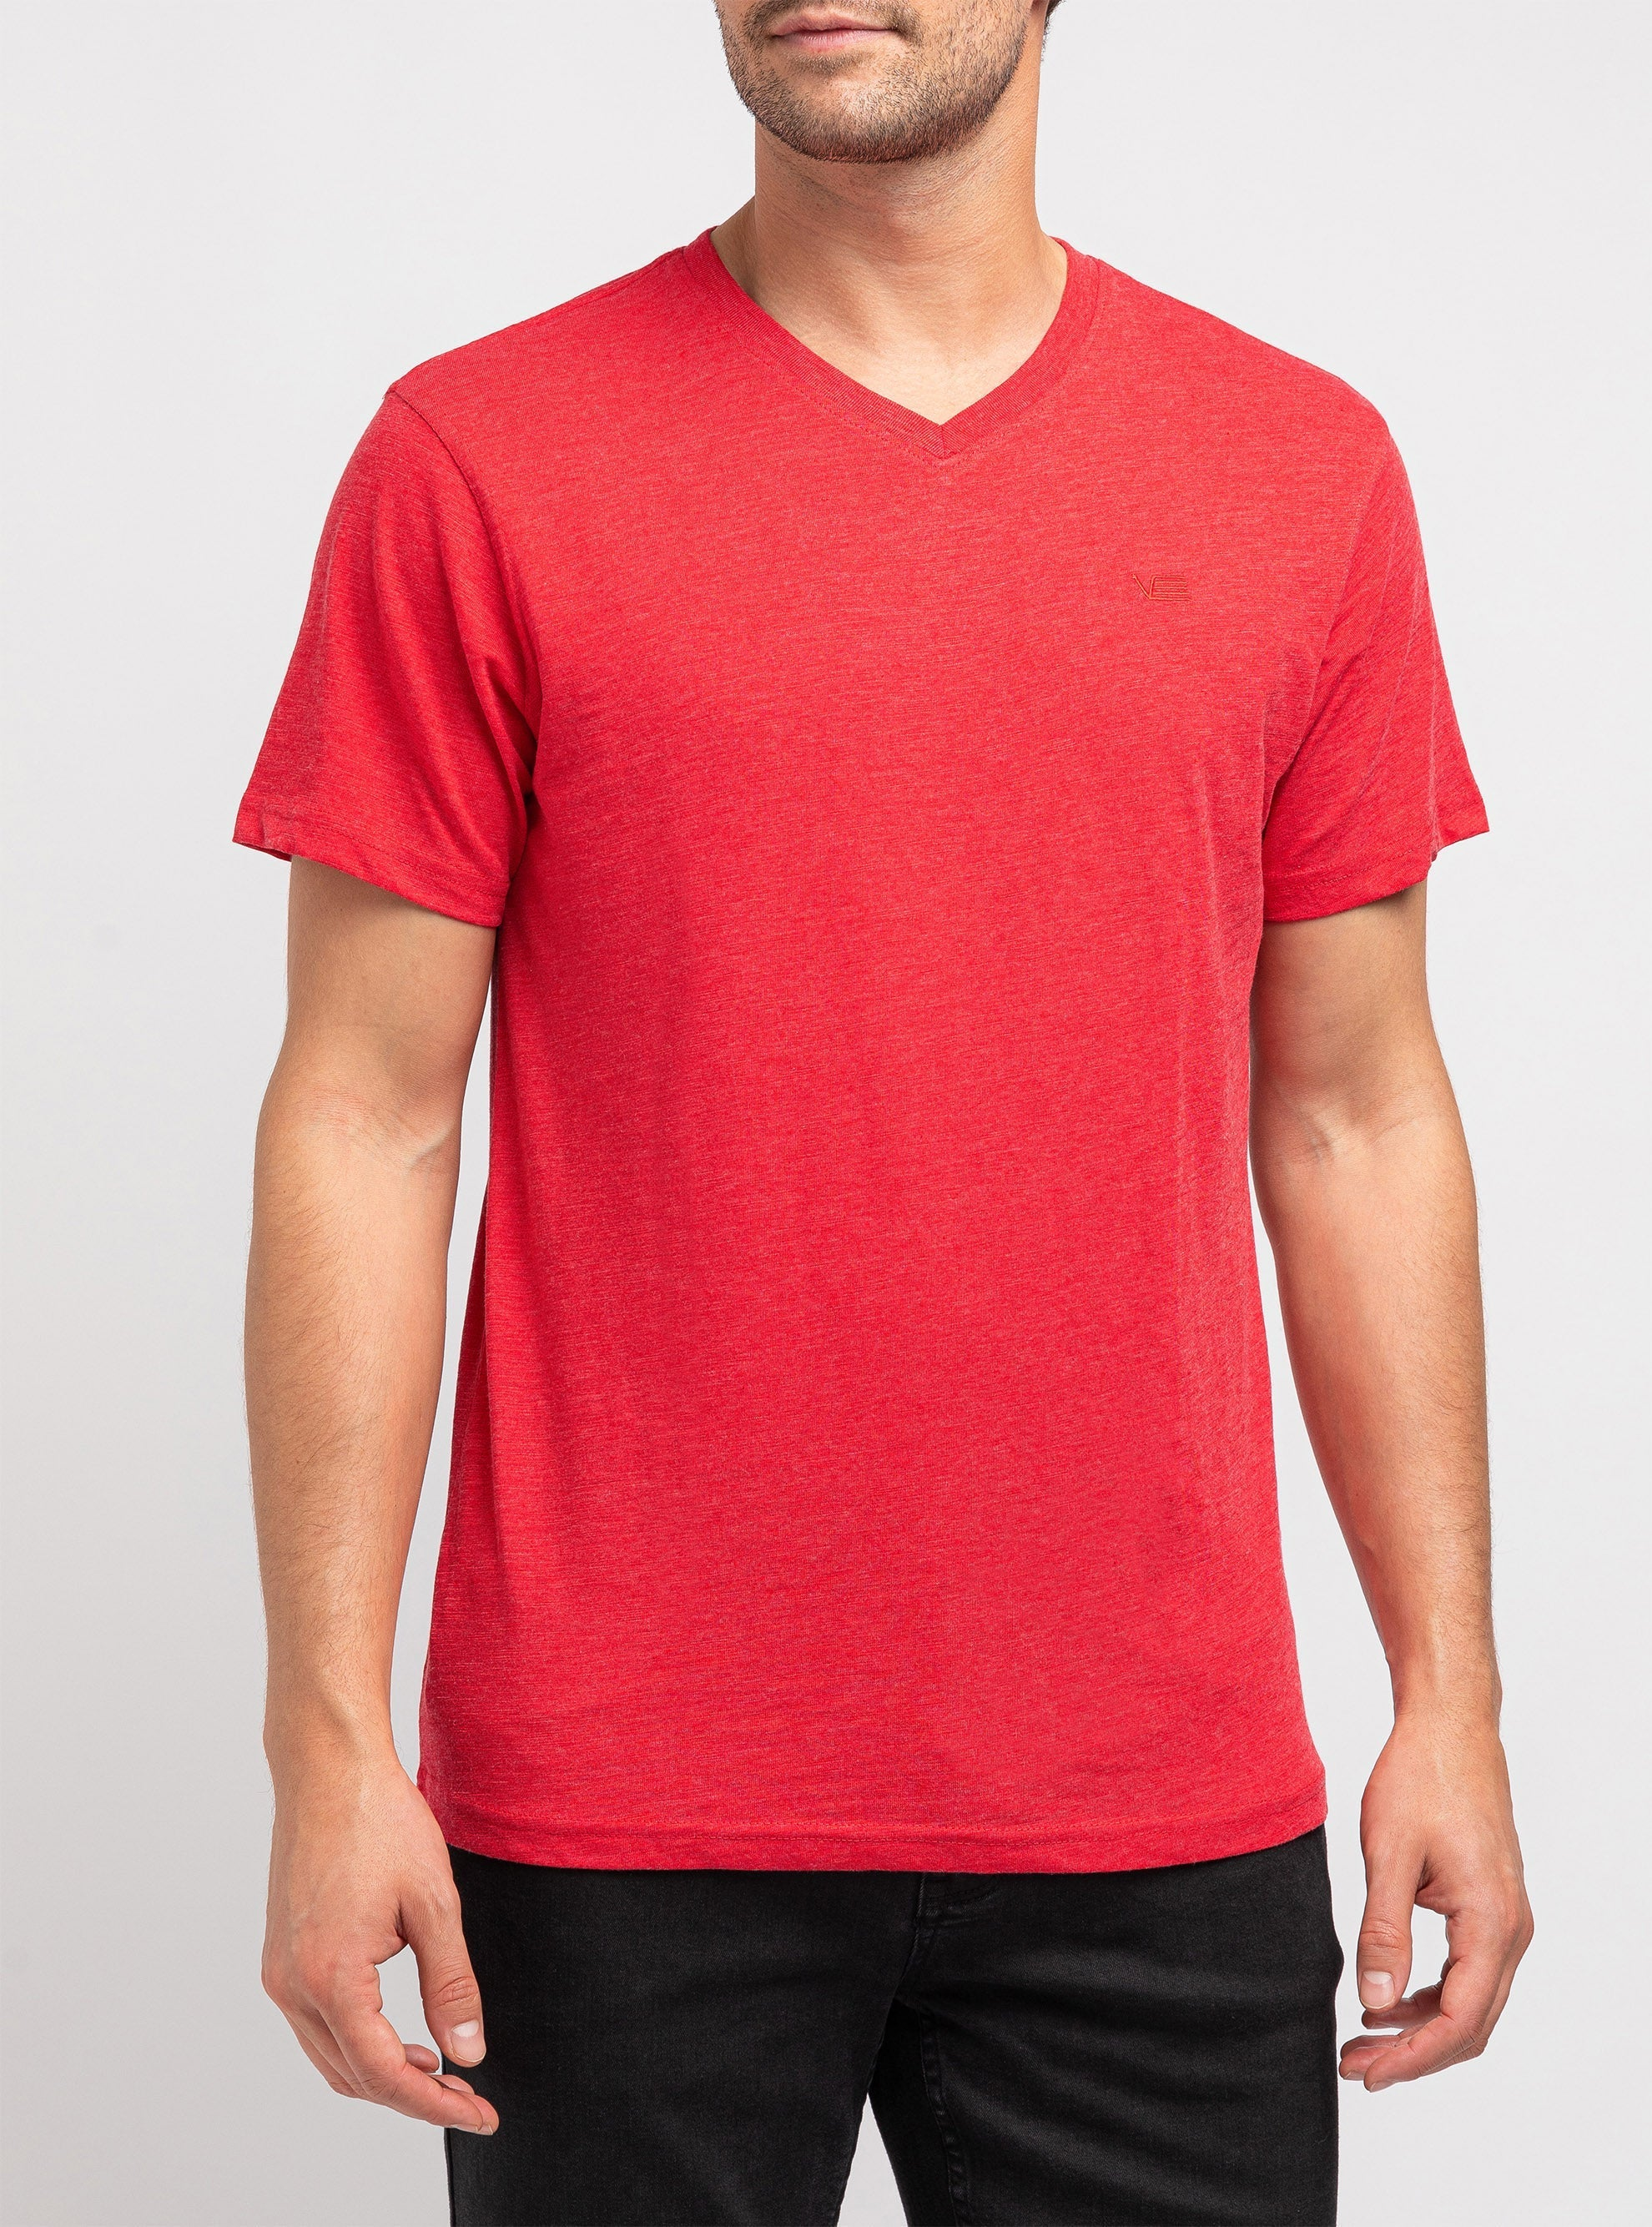 Red essential t-shirt